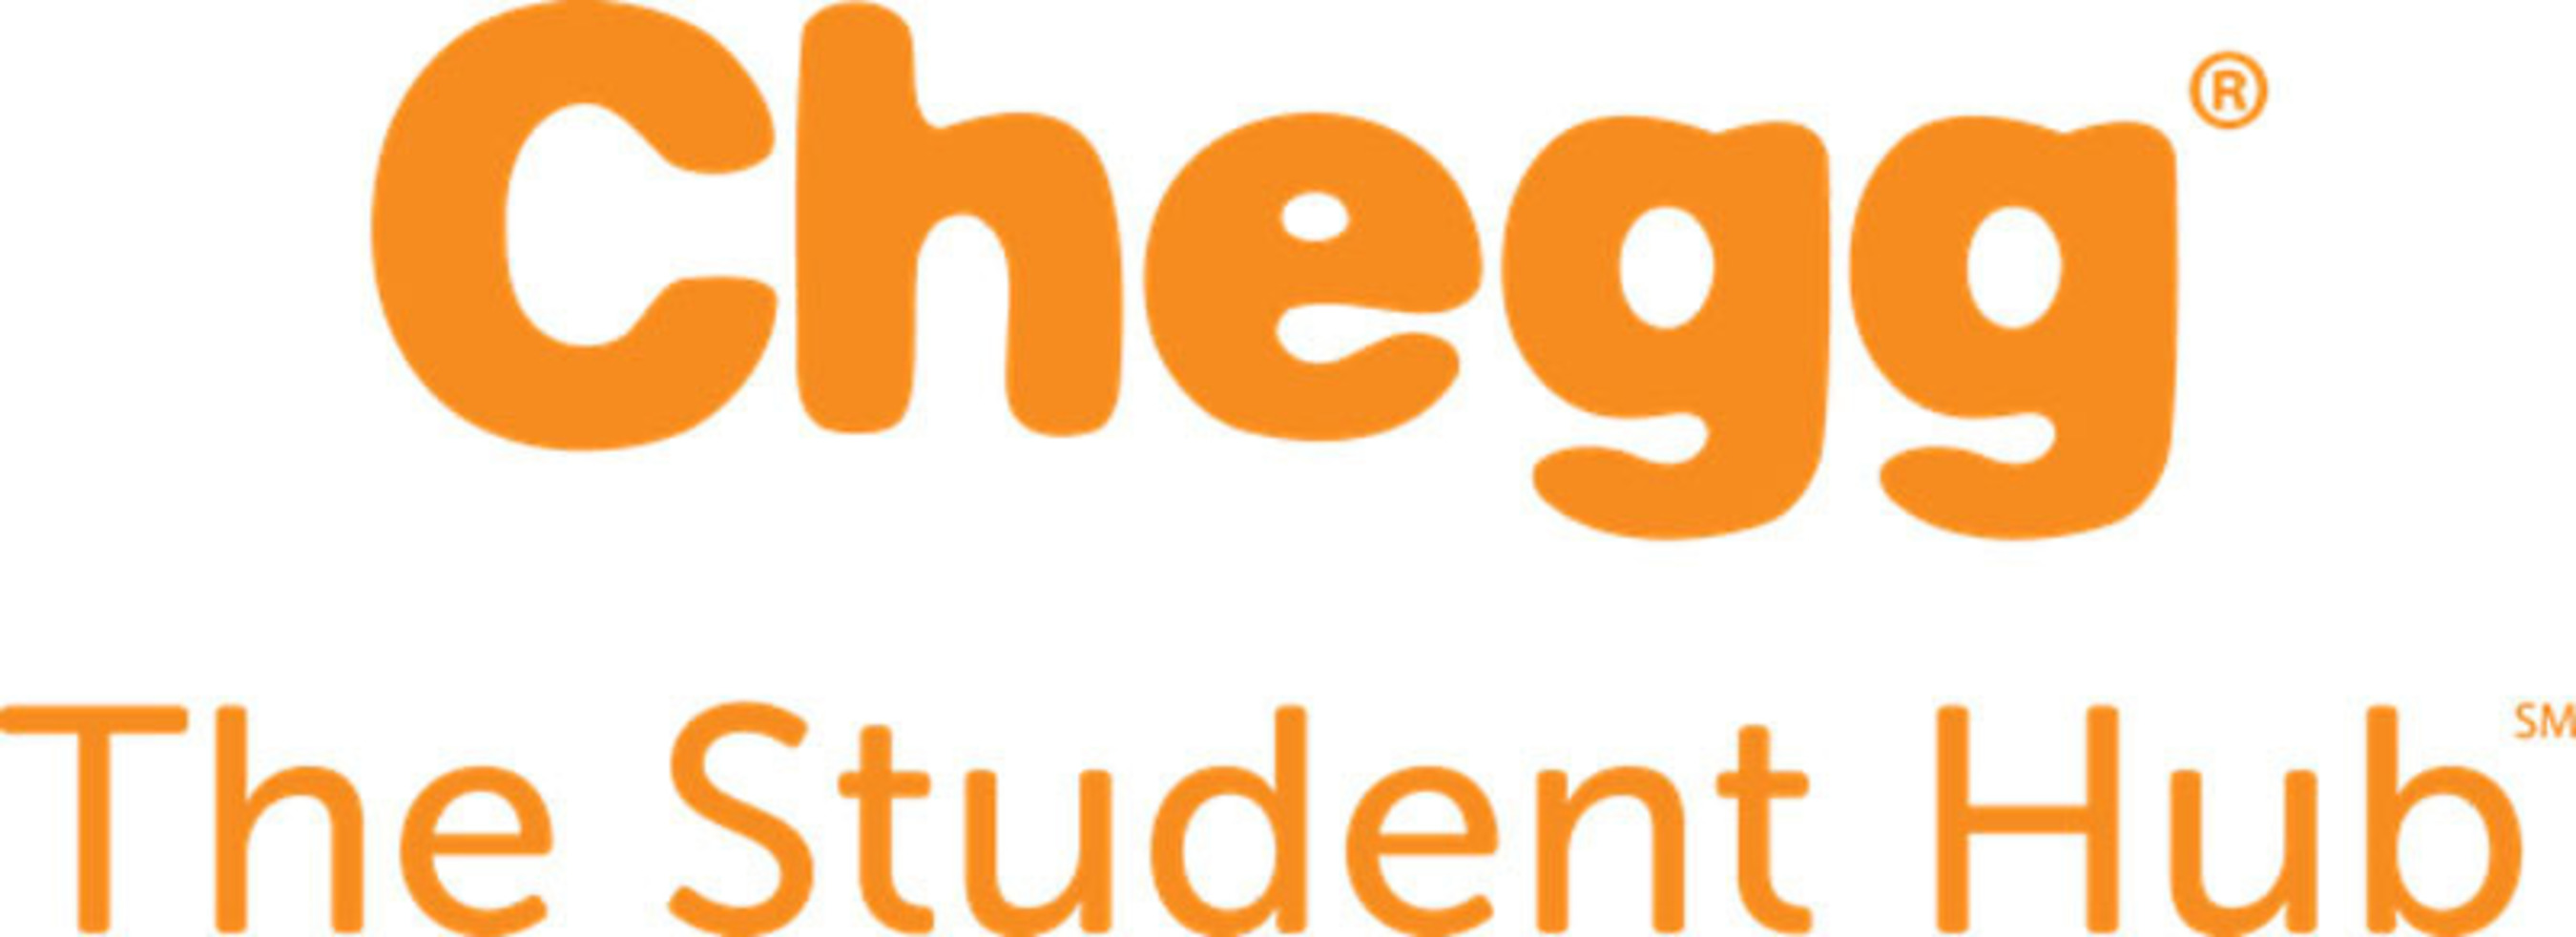 Chegg Tutors: VIP Edition, Learning with the Stars